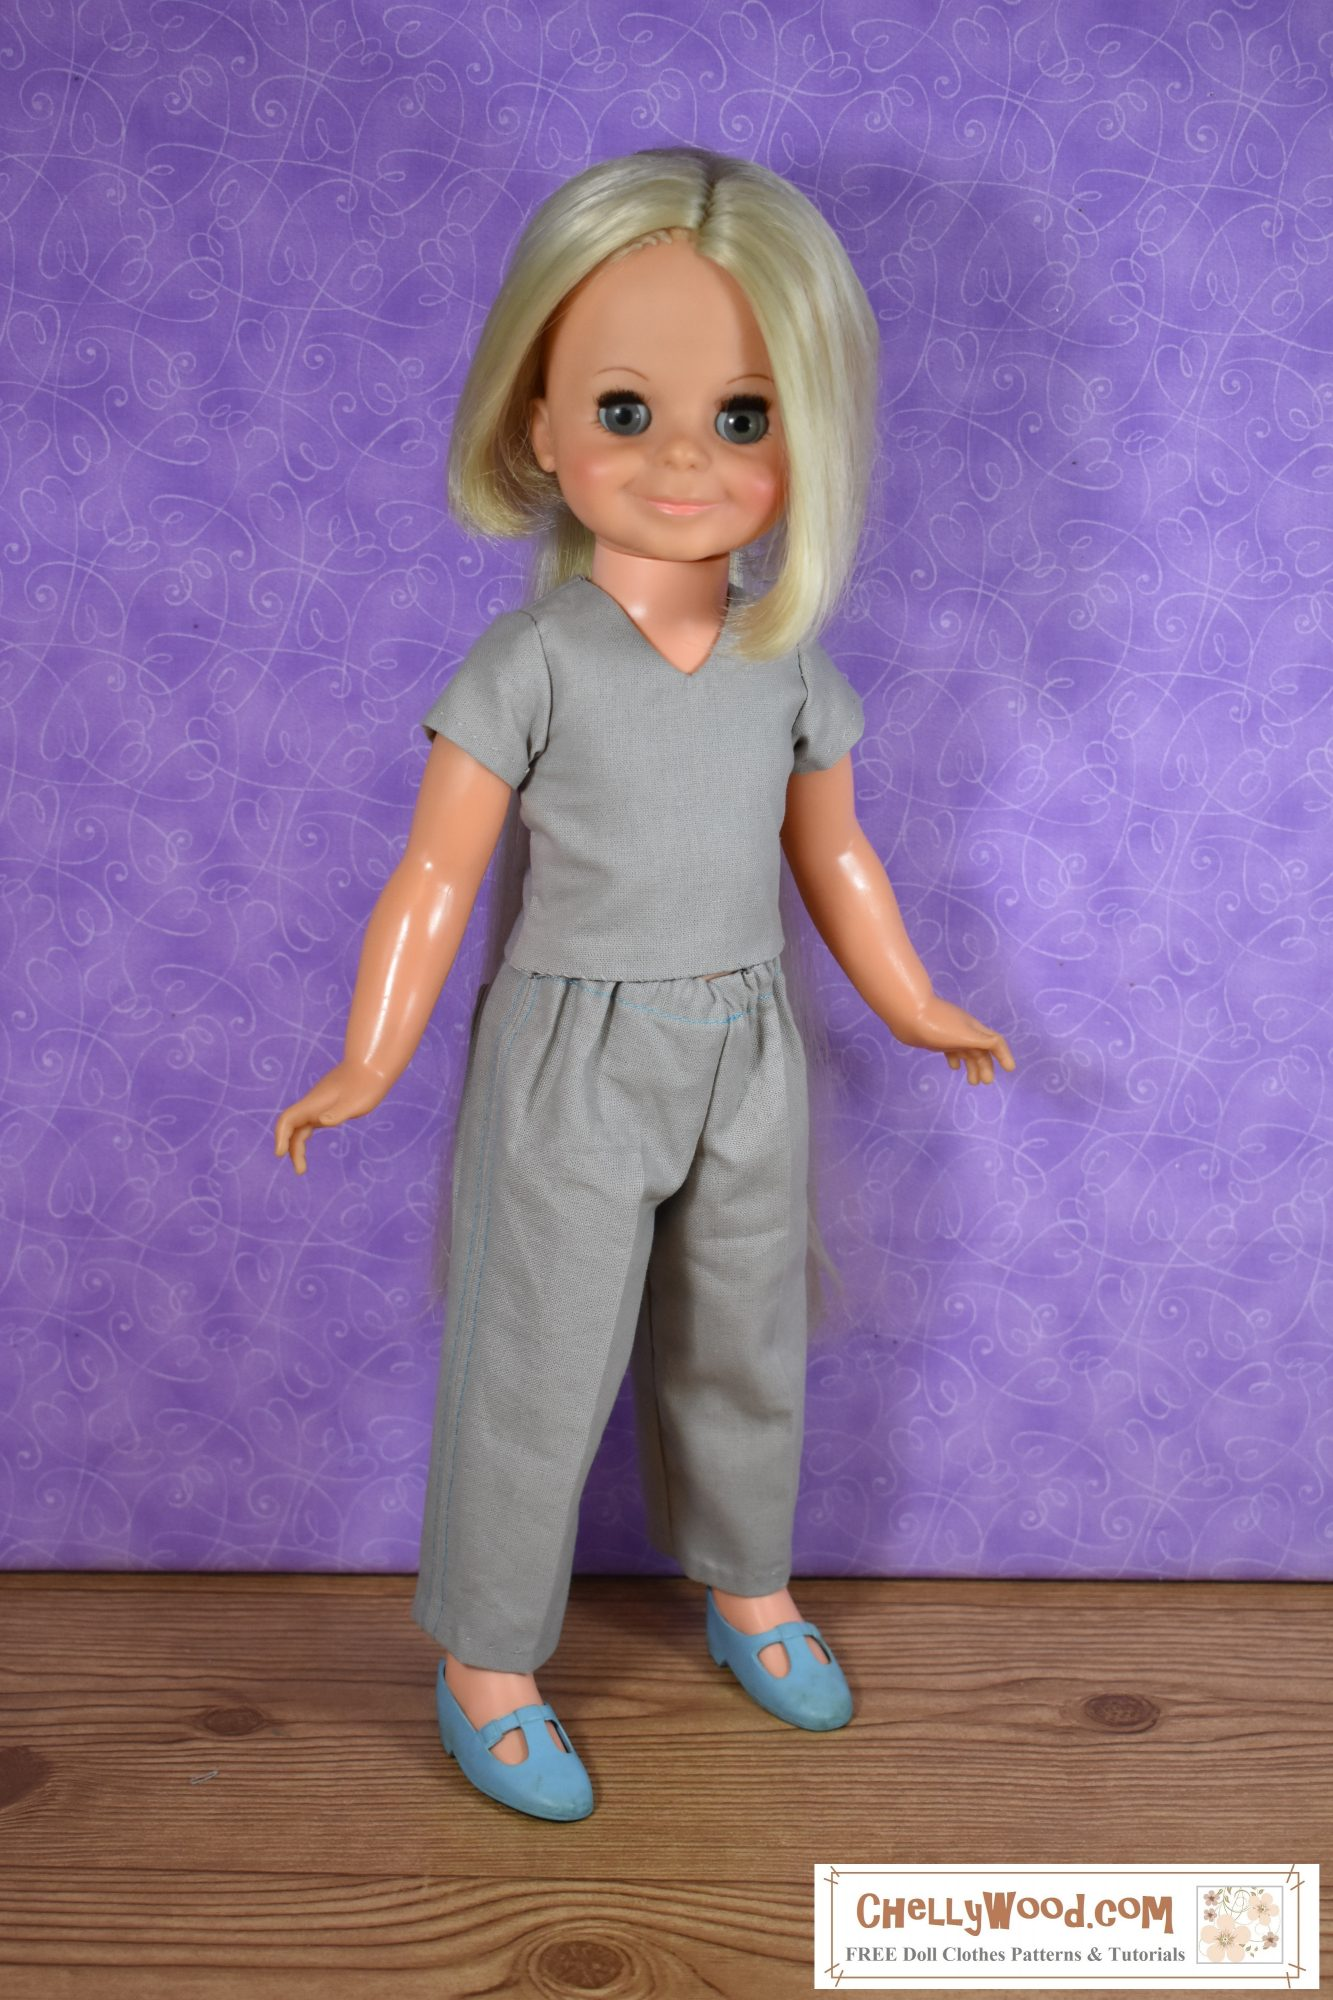 Here we see a vintage Velvet doll with her long blond hair hidden. That's because she's dressed in a nurse's scrubs for this photo: a short-sleeved V-neck grey cotton shirt and grey cotton pants with an elastic waist.